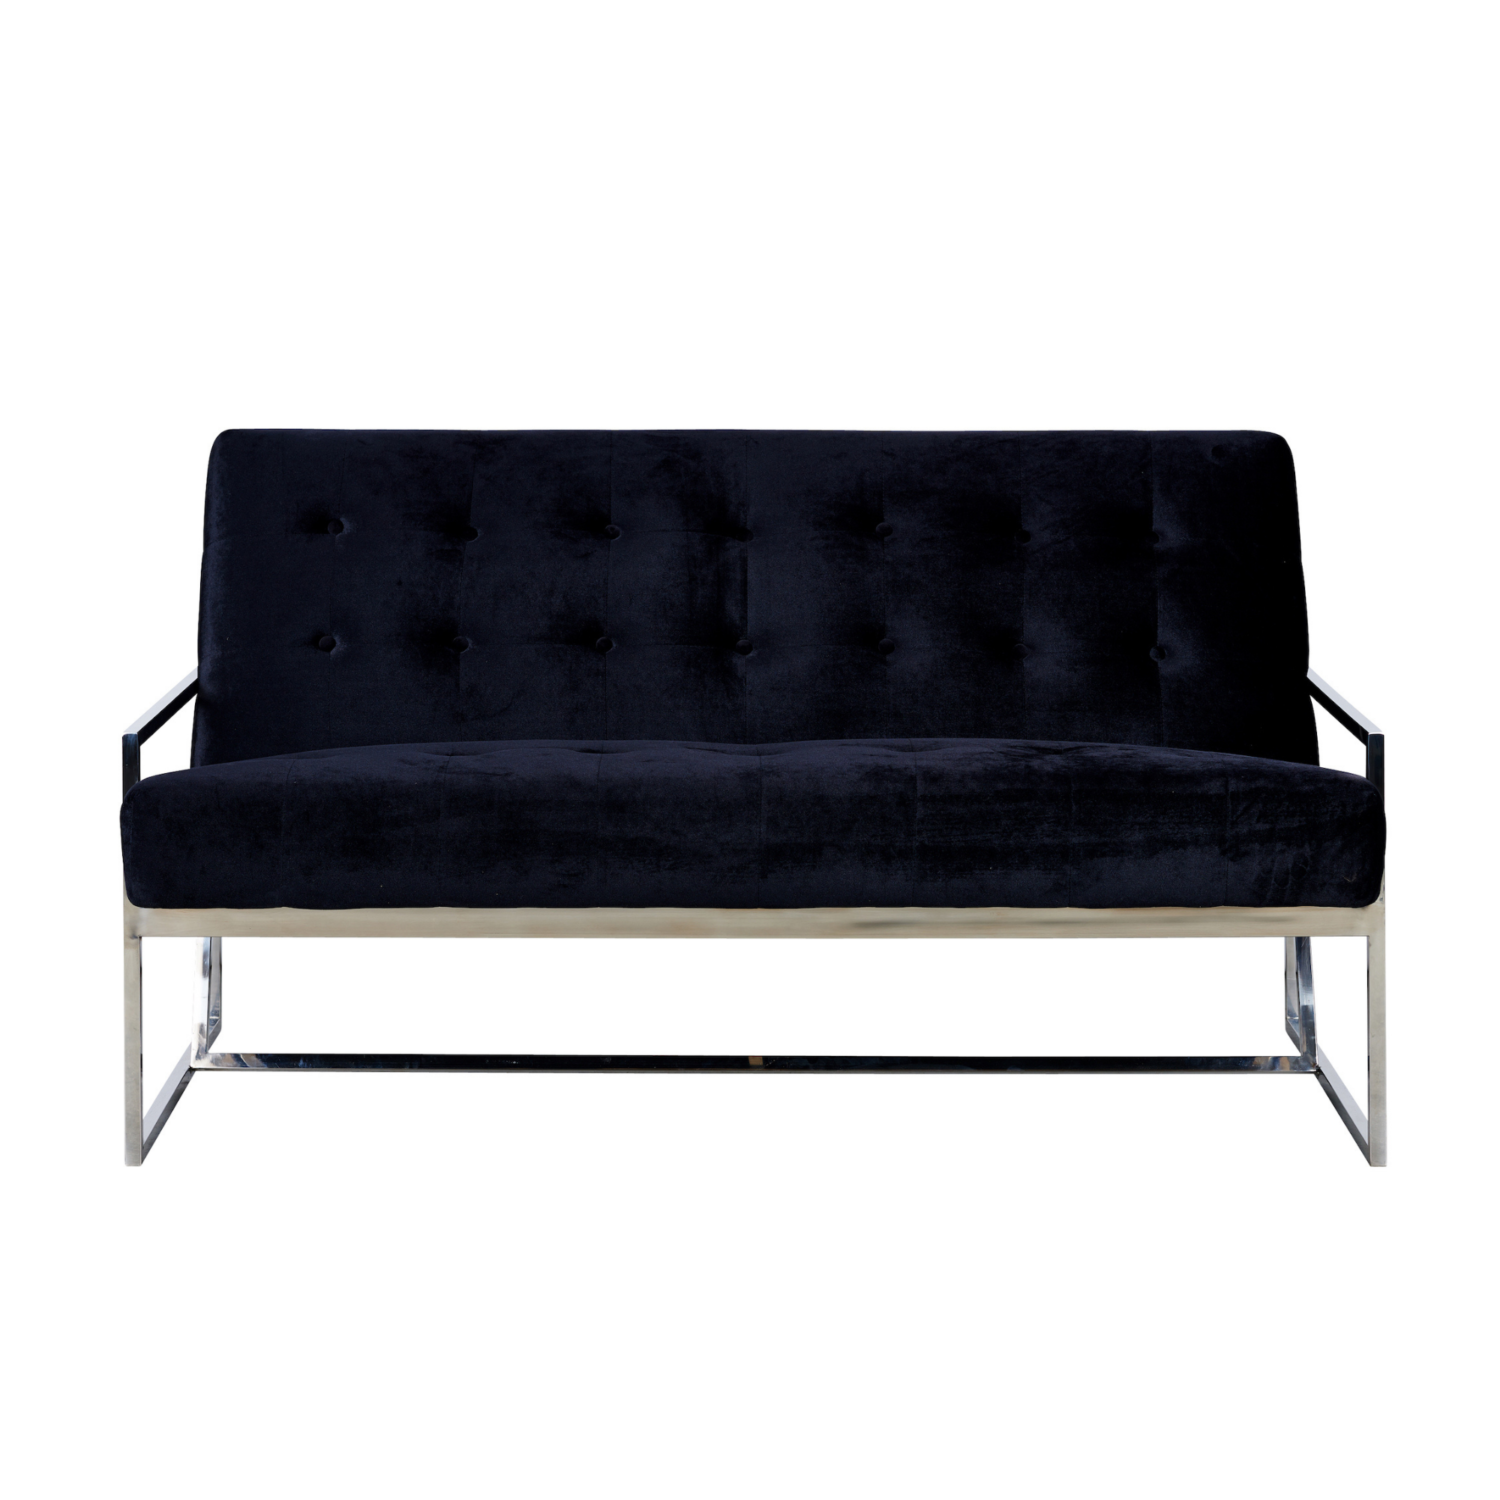 Starlet Two Seater Sofa - Black / Silver Frame - Event Artillery